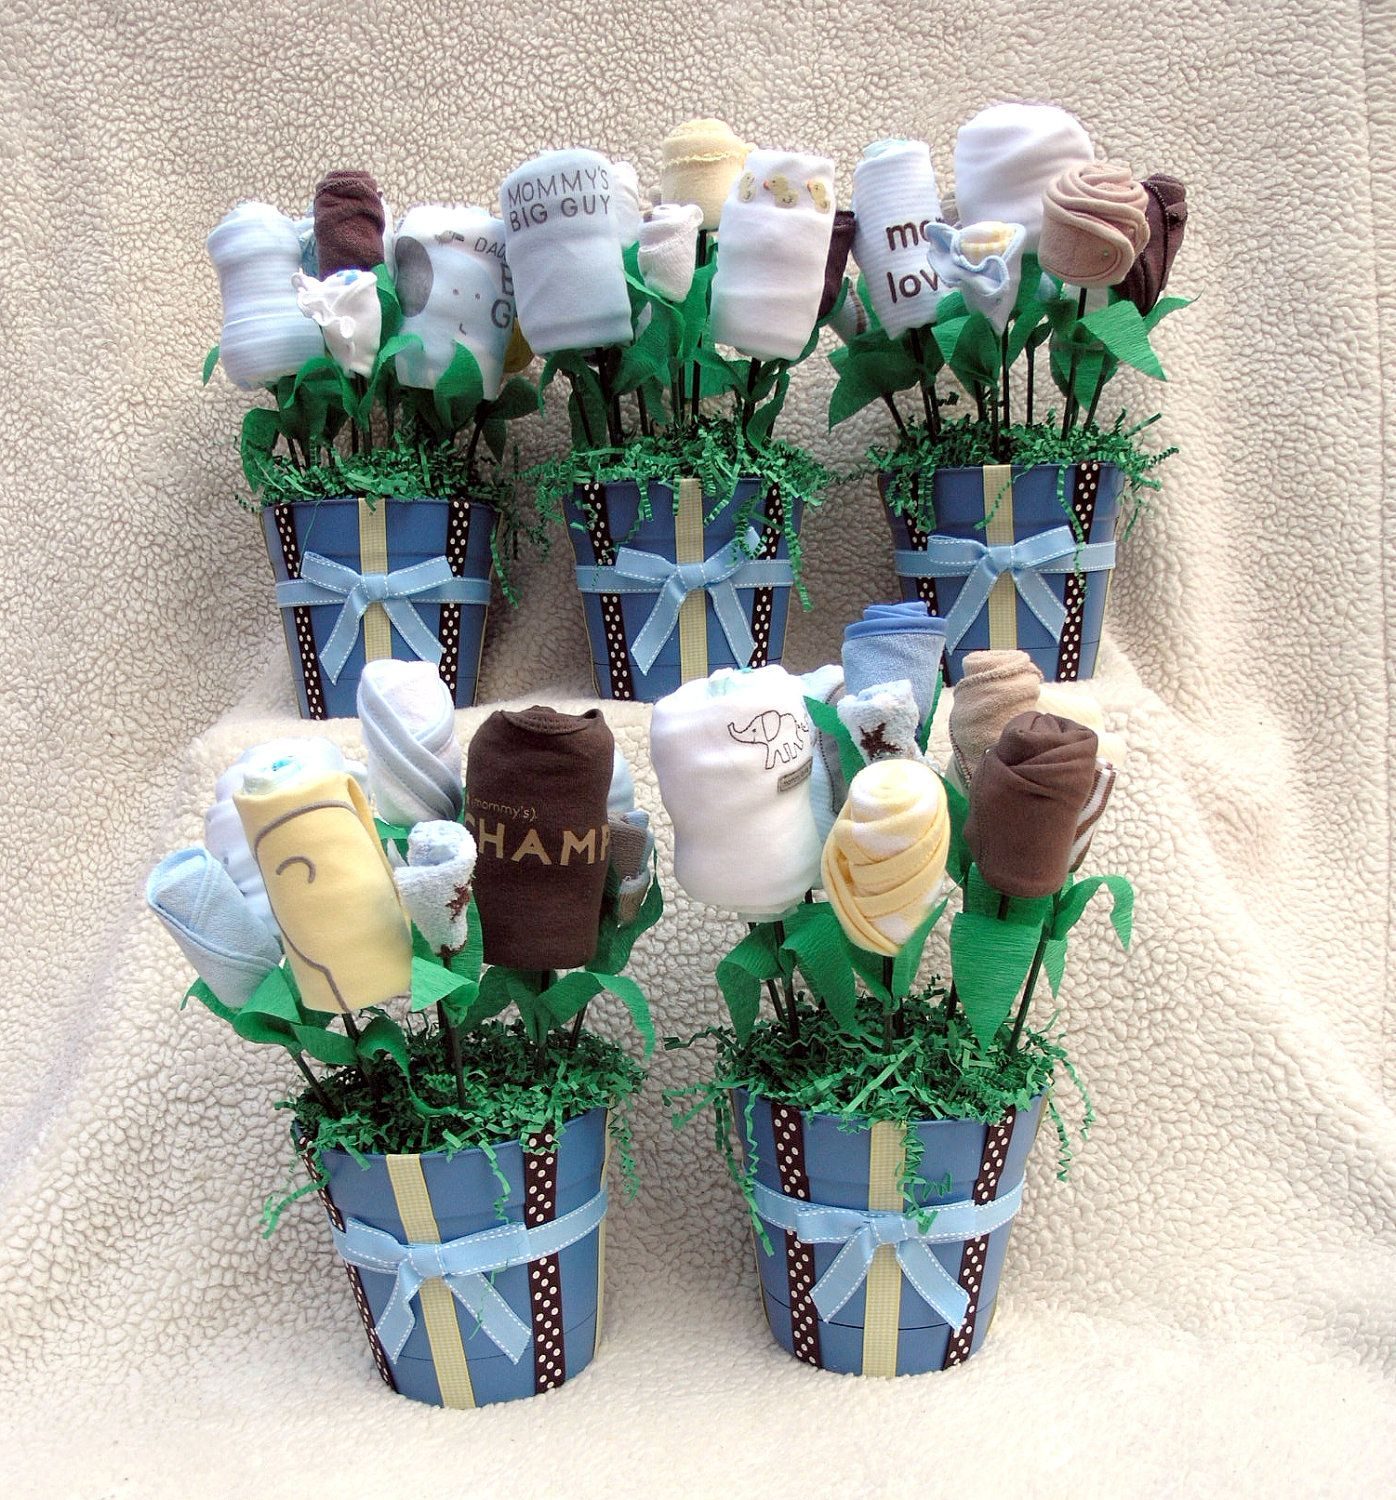 5 Baby Shower Decorations For a Baby Boy Shower $245 00 via Etsy